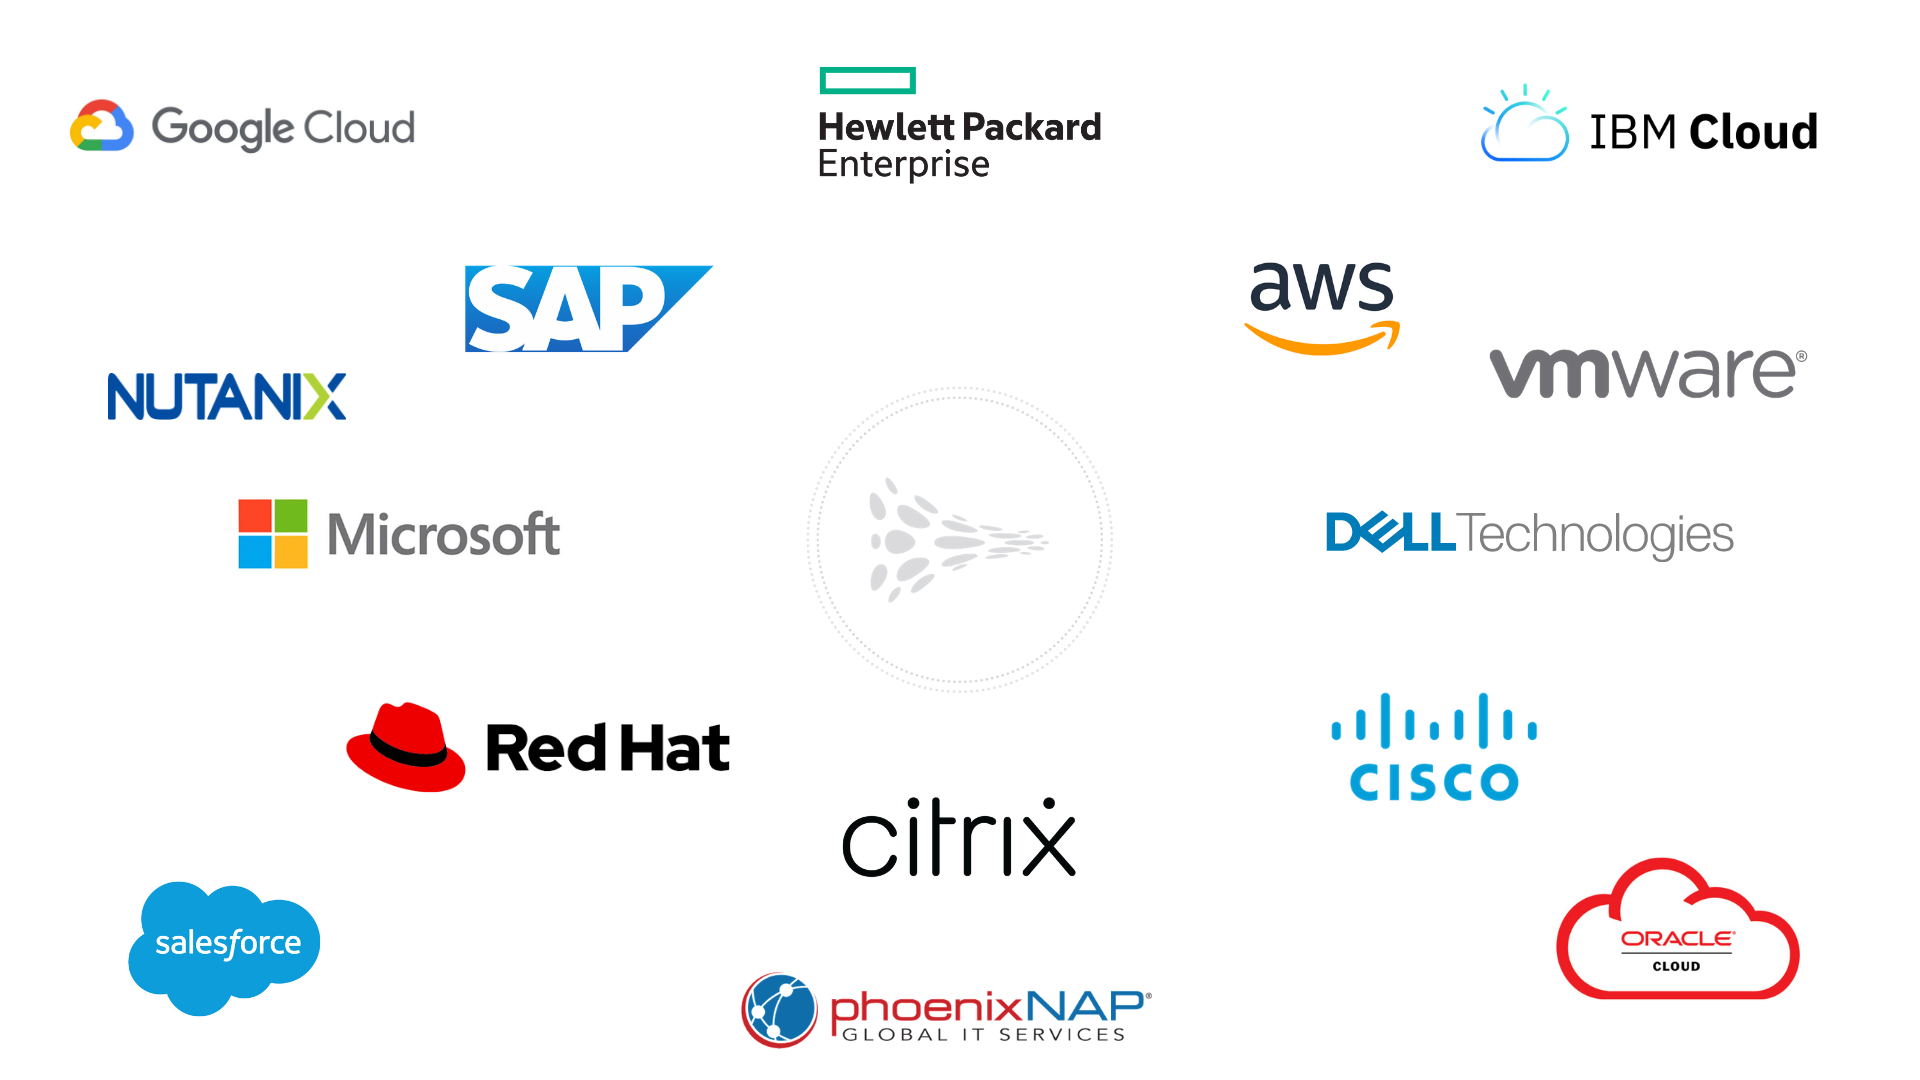 real-time cloud provider capabilities